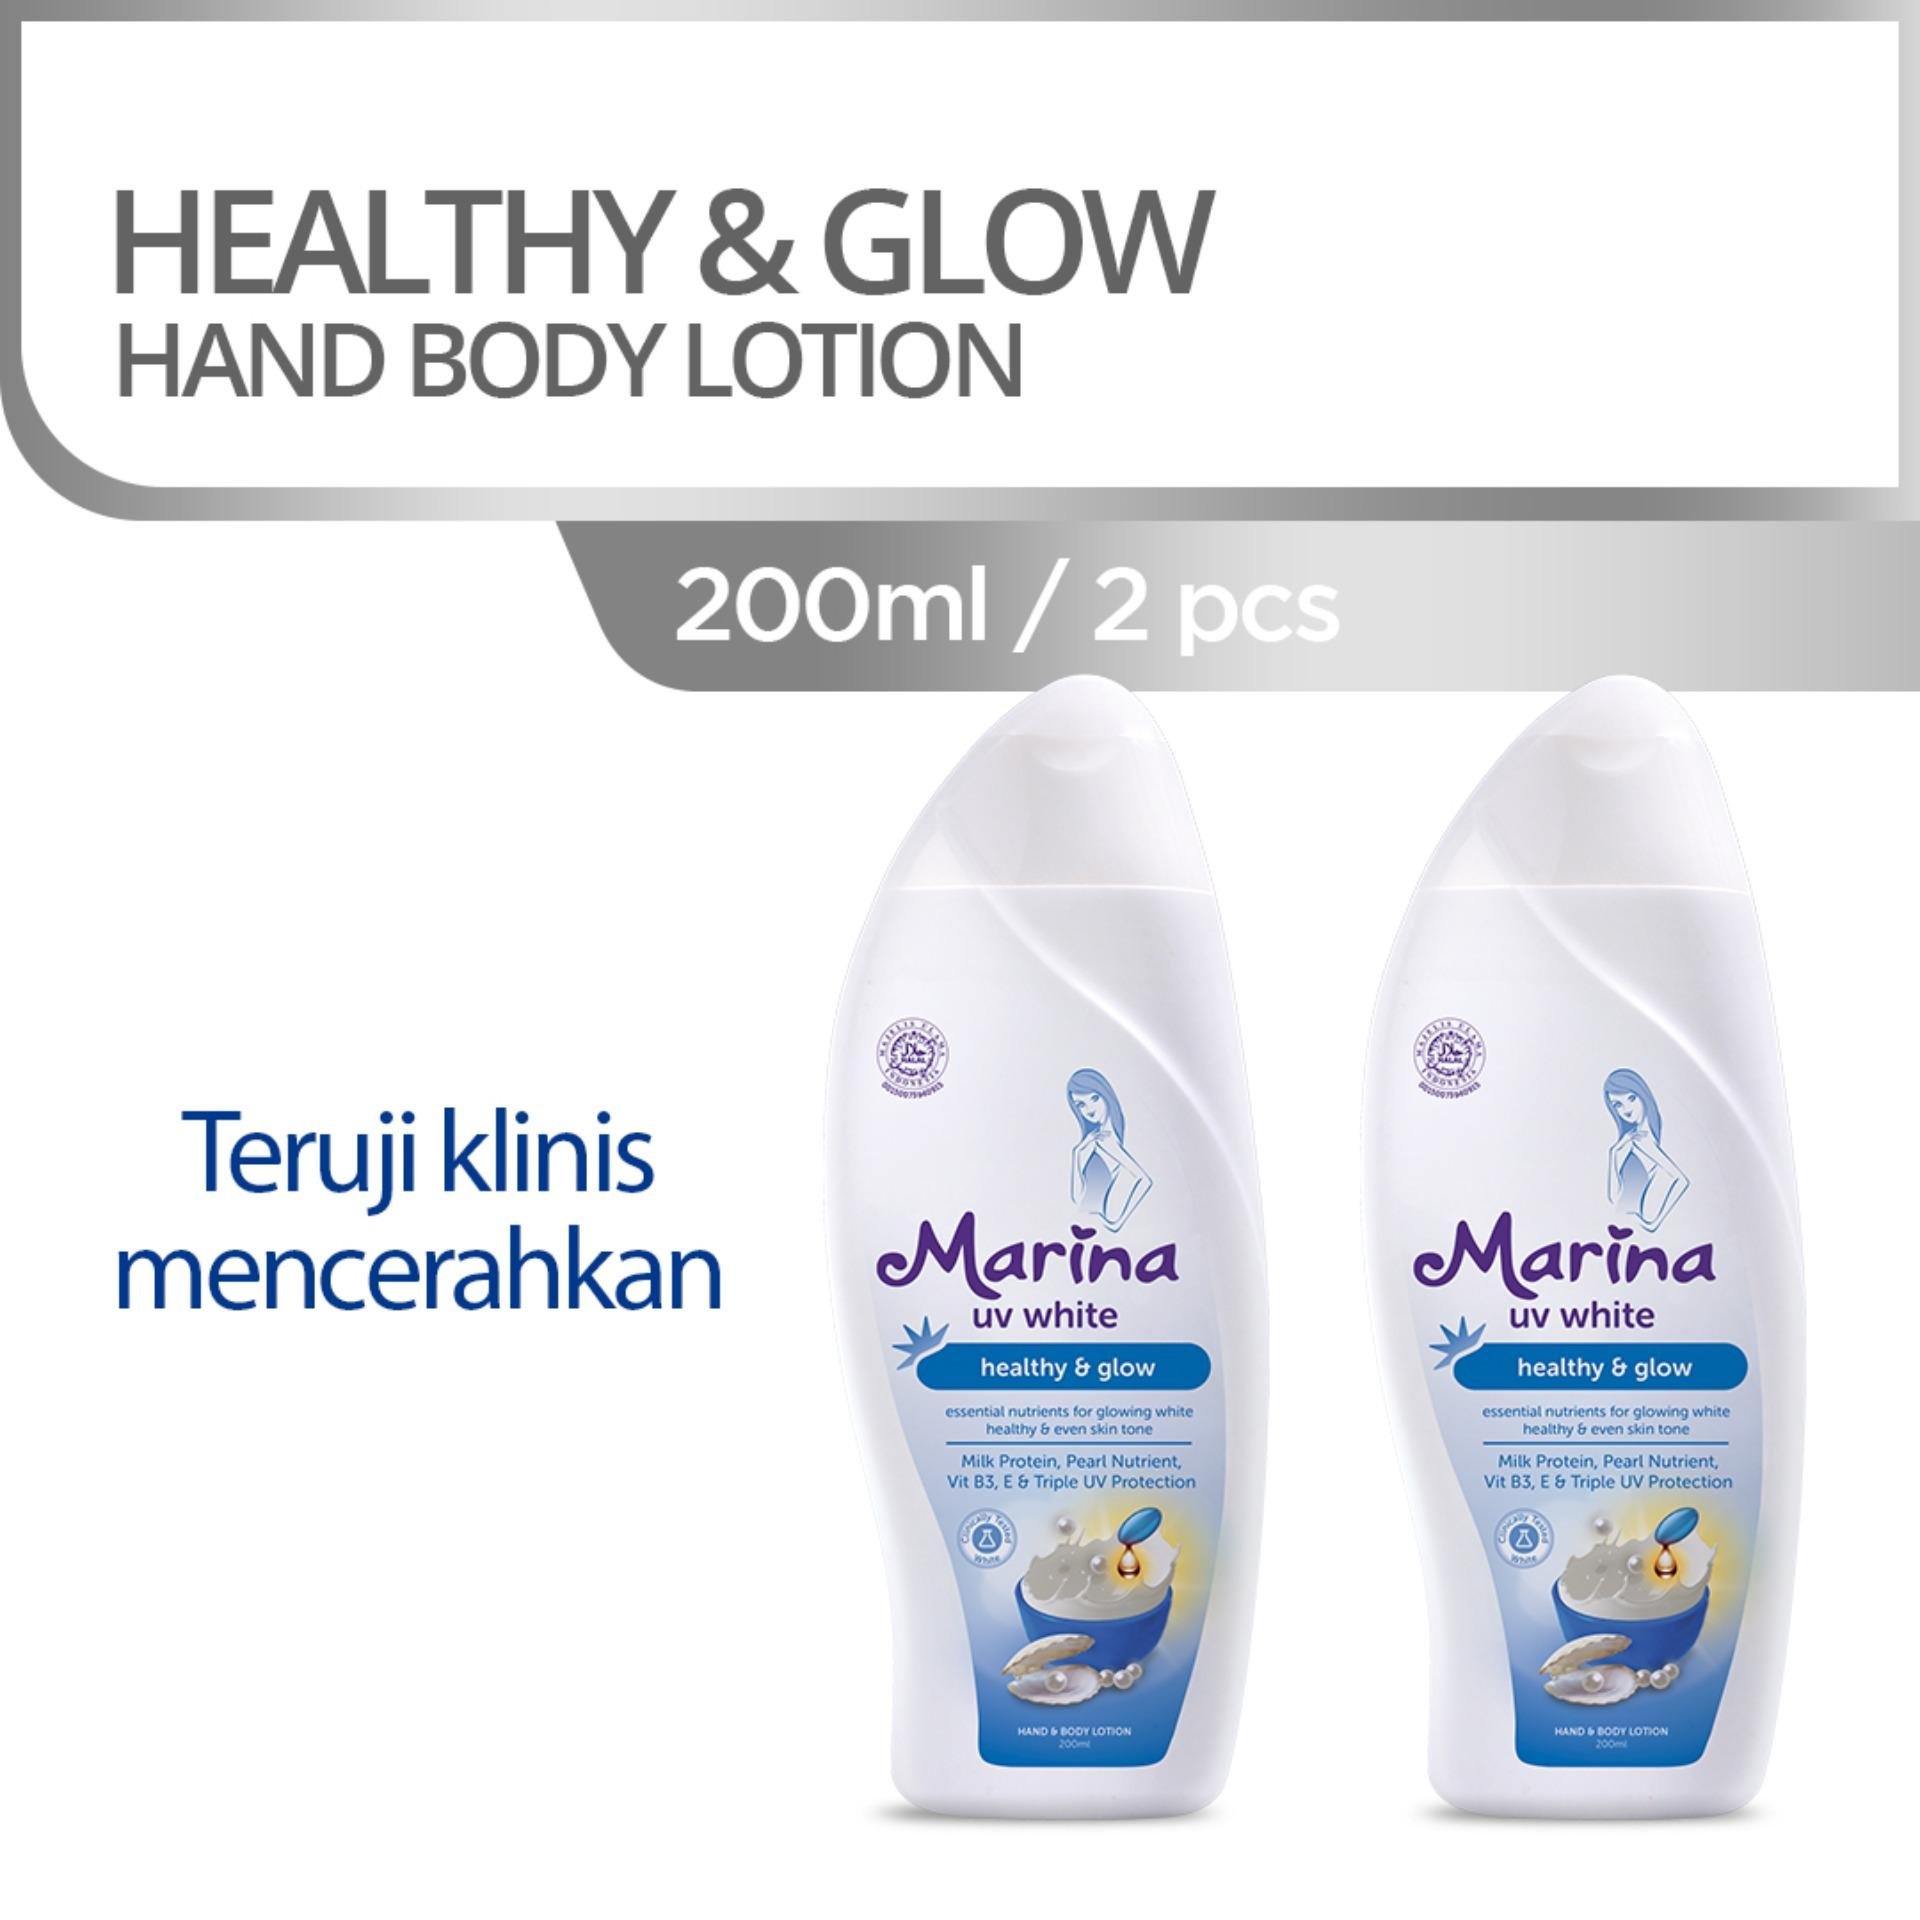 Watsons Goat Milk Lightening Rose Scented Shower Cream 1000ml Buy 2 Botol 250ml Get Free Refill Page Source Marina Hand Body Lotion Uv White Healthy Glow